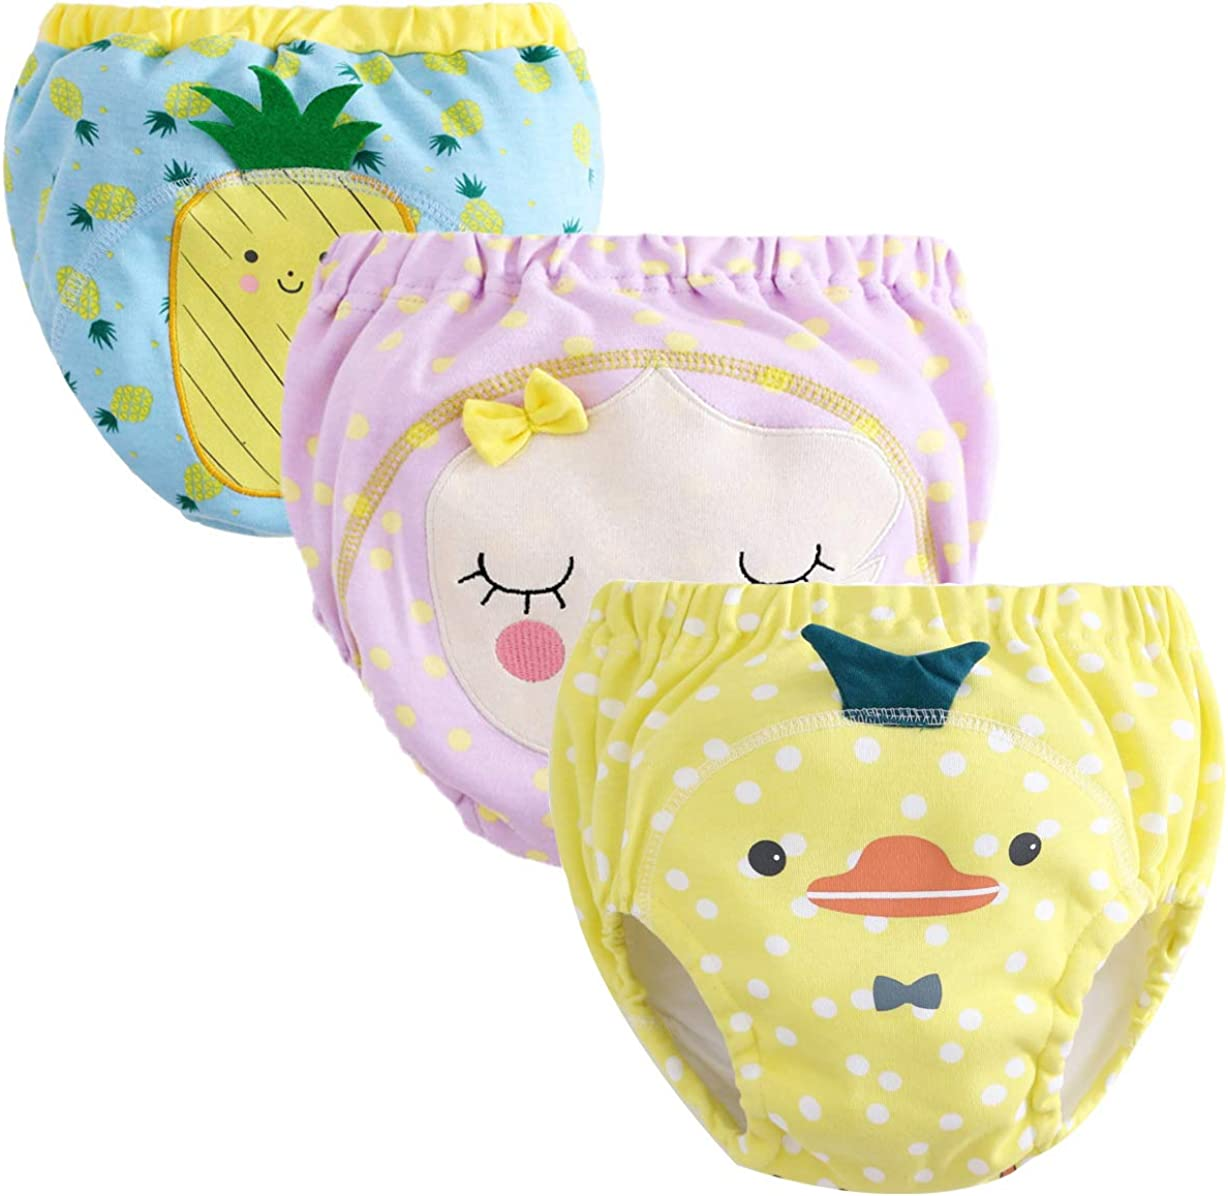 Abalacoco Training Underwear Newborn Baby Infant Cotton Toddler Pants Briefs Potty Reusable Diapers (18-24 Month, Pink/Blue/Yellow)